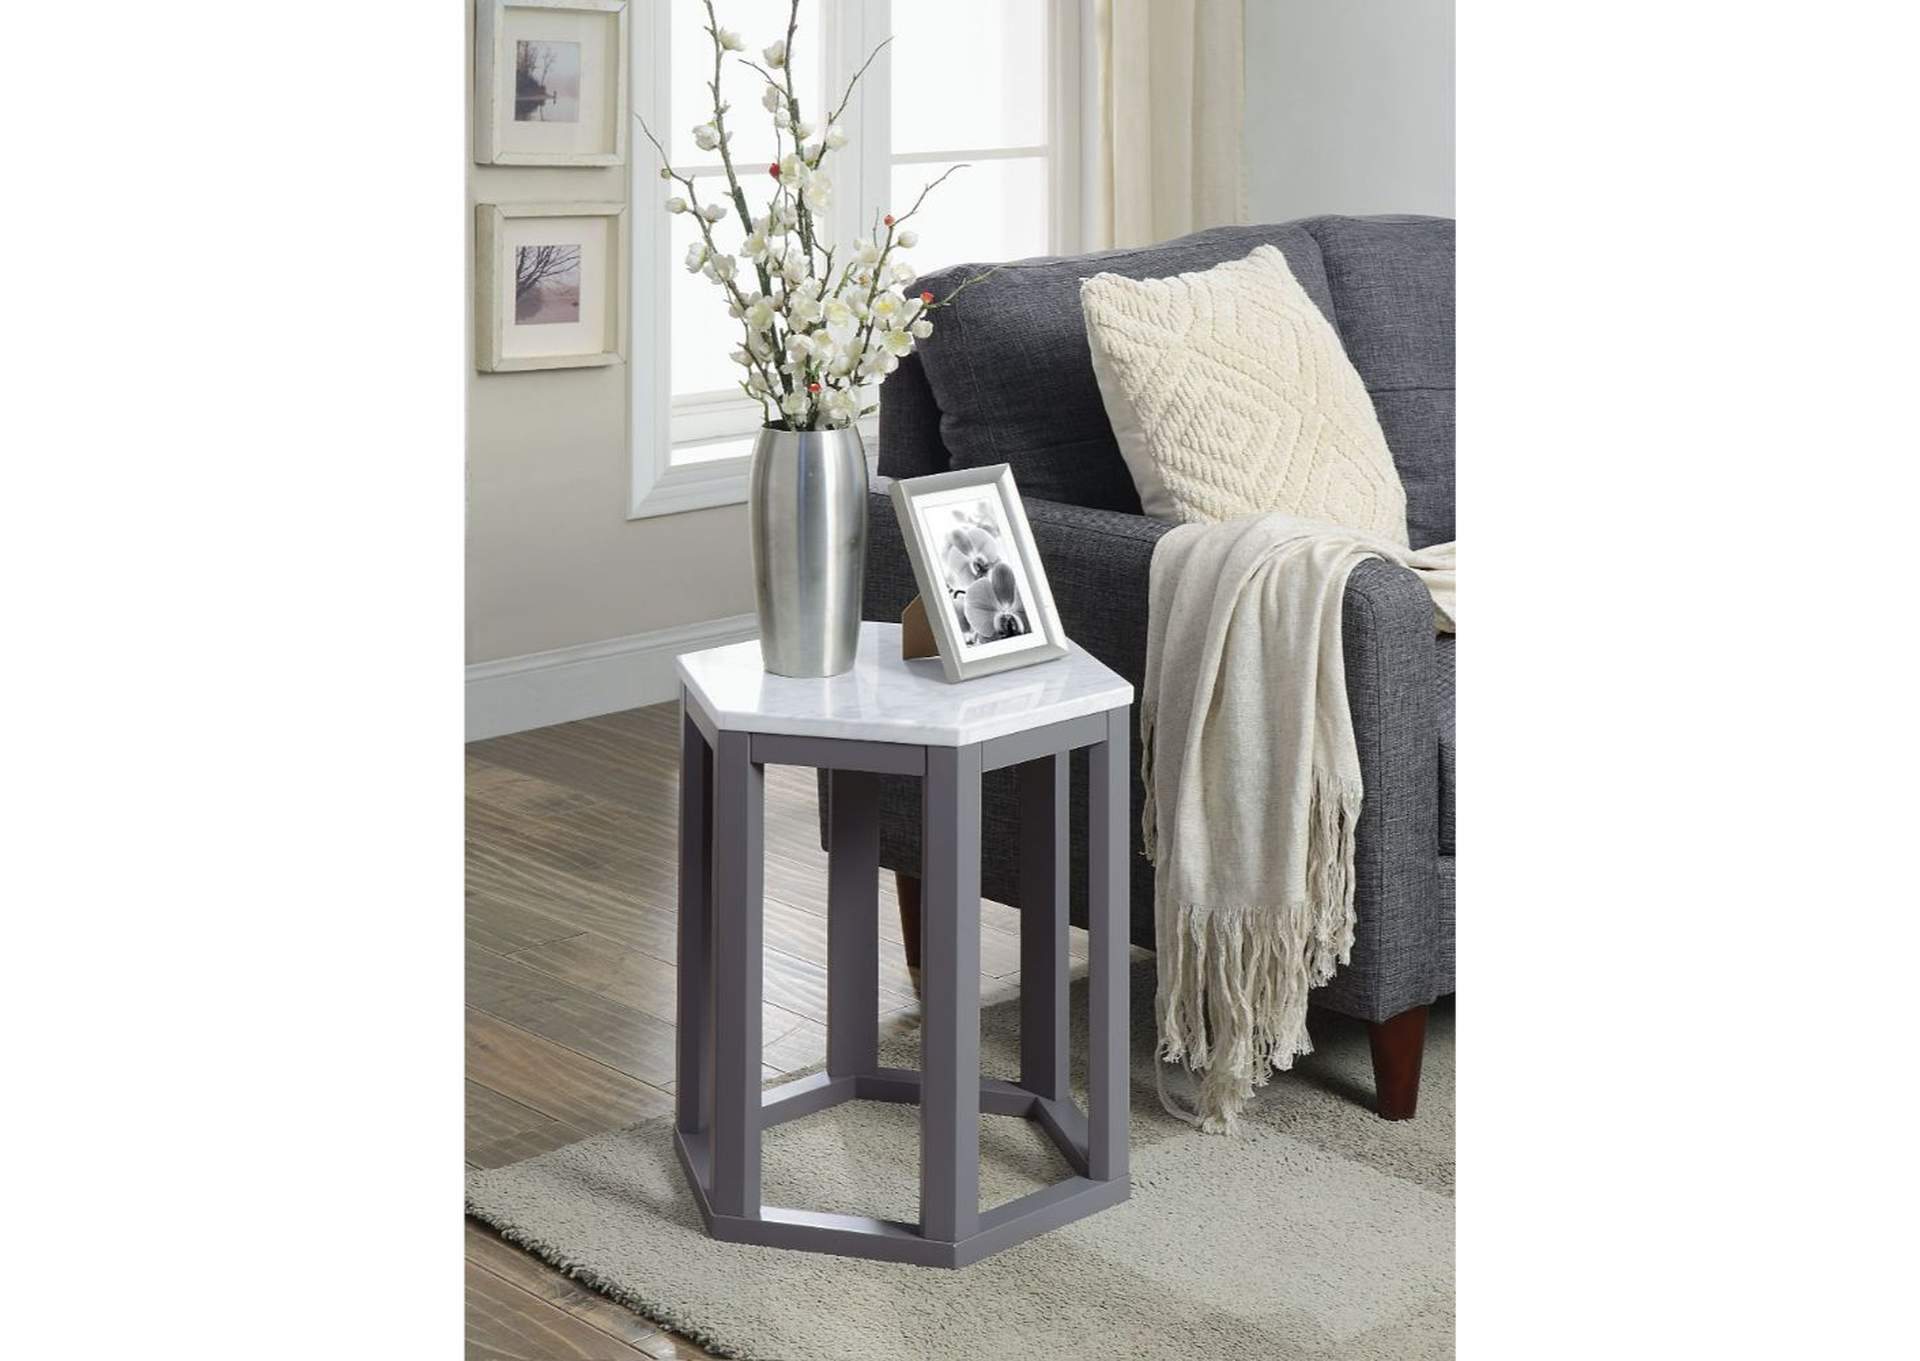 Reon Marble & Gray Accent Table,Acme